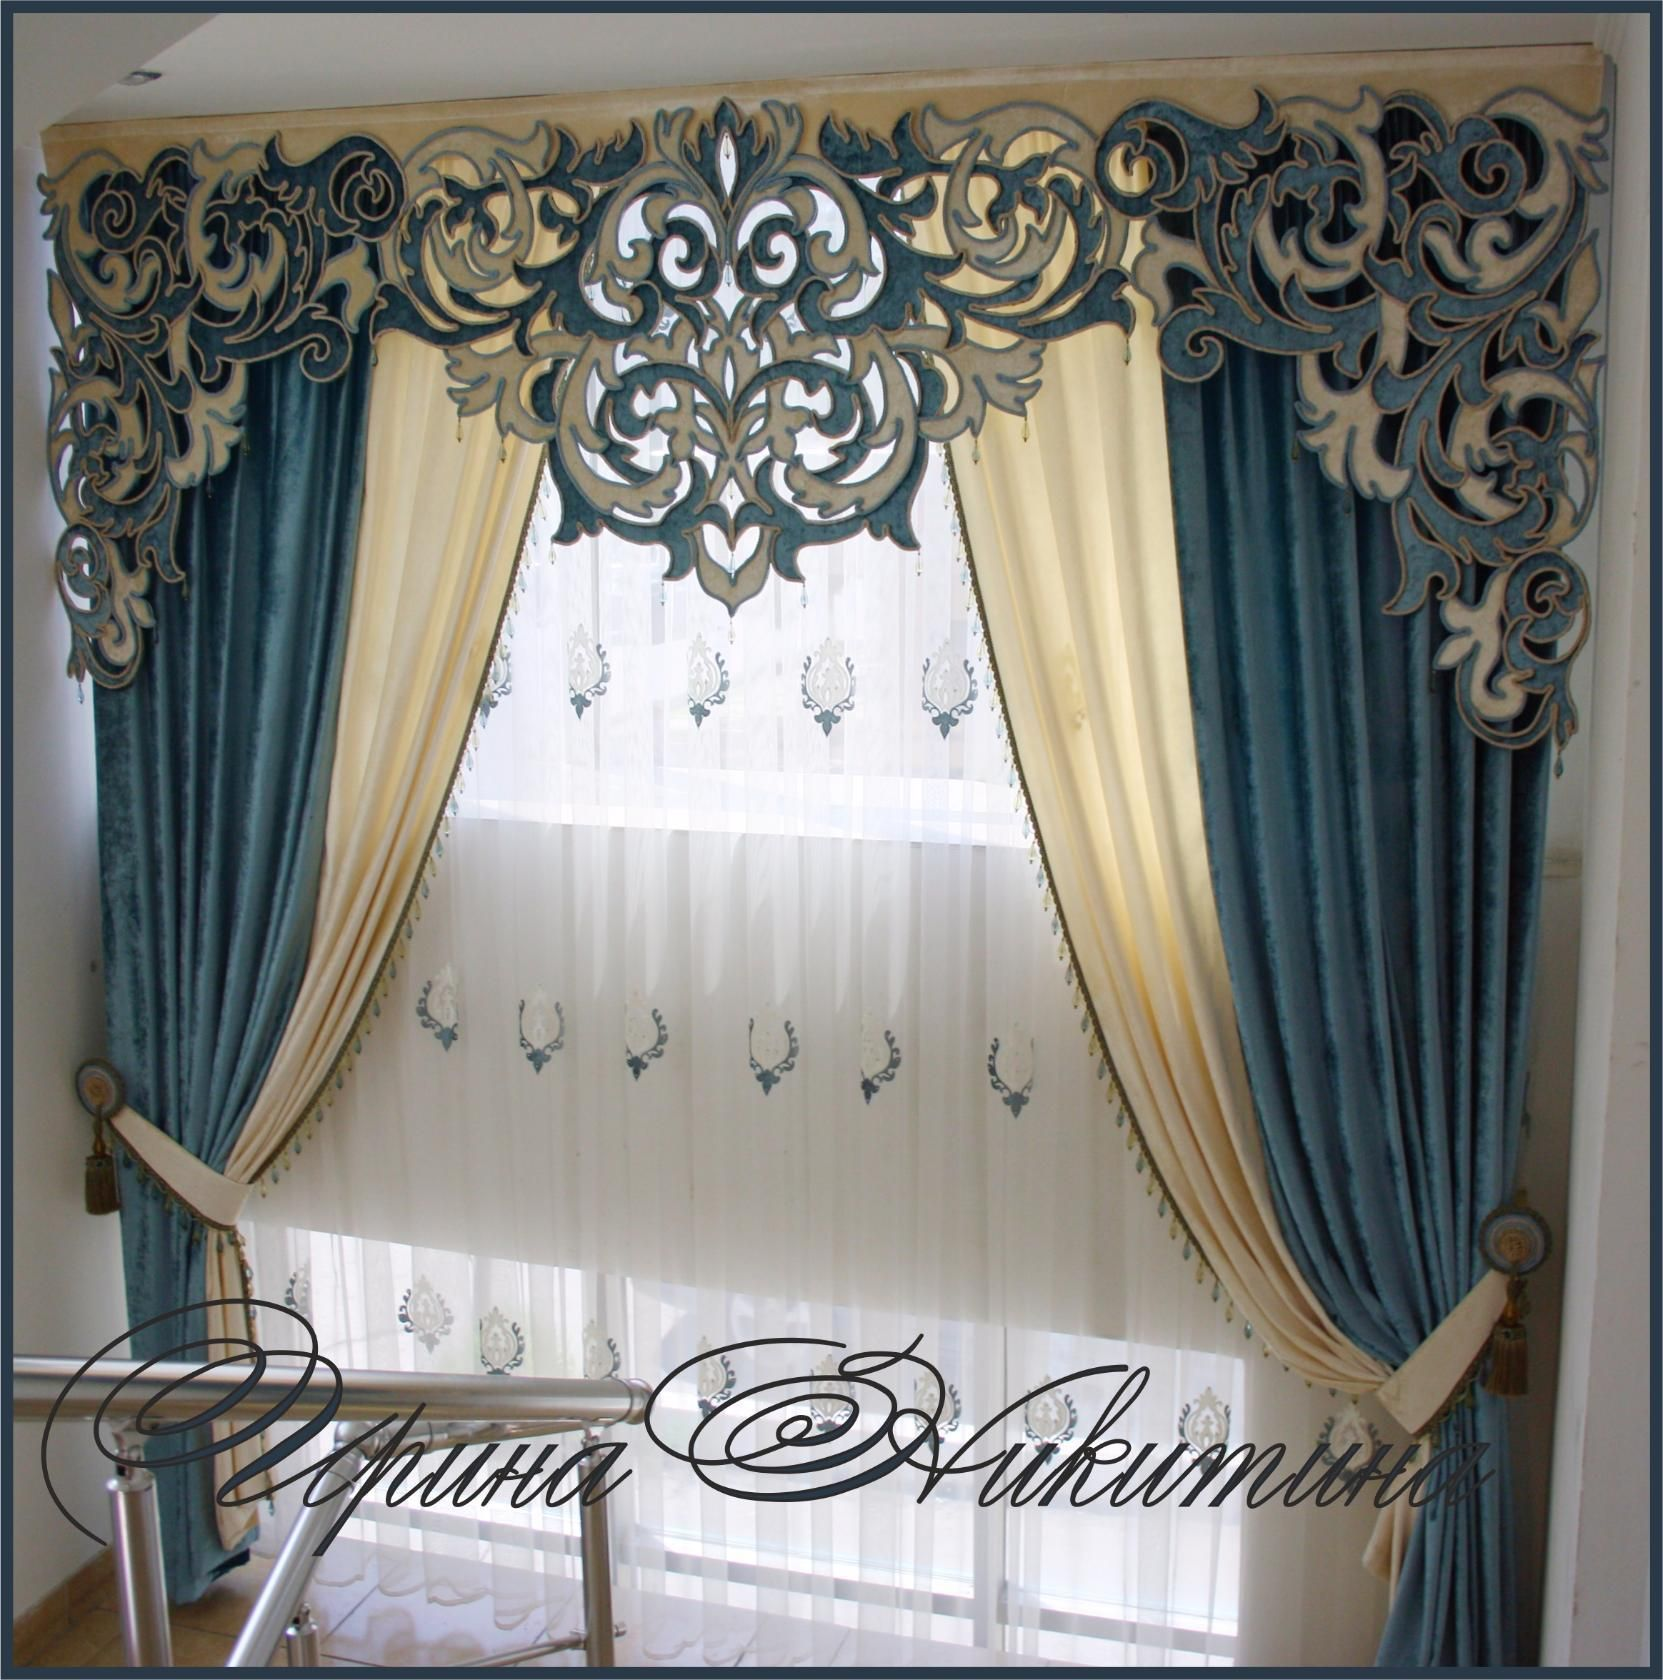 Modern curtain designs for bedroom pin by supreet kamboj on curtains  pinterest  window curtain